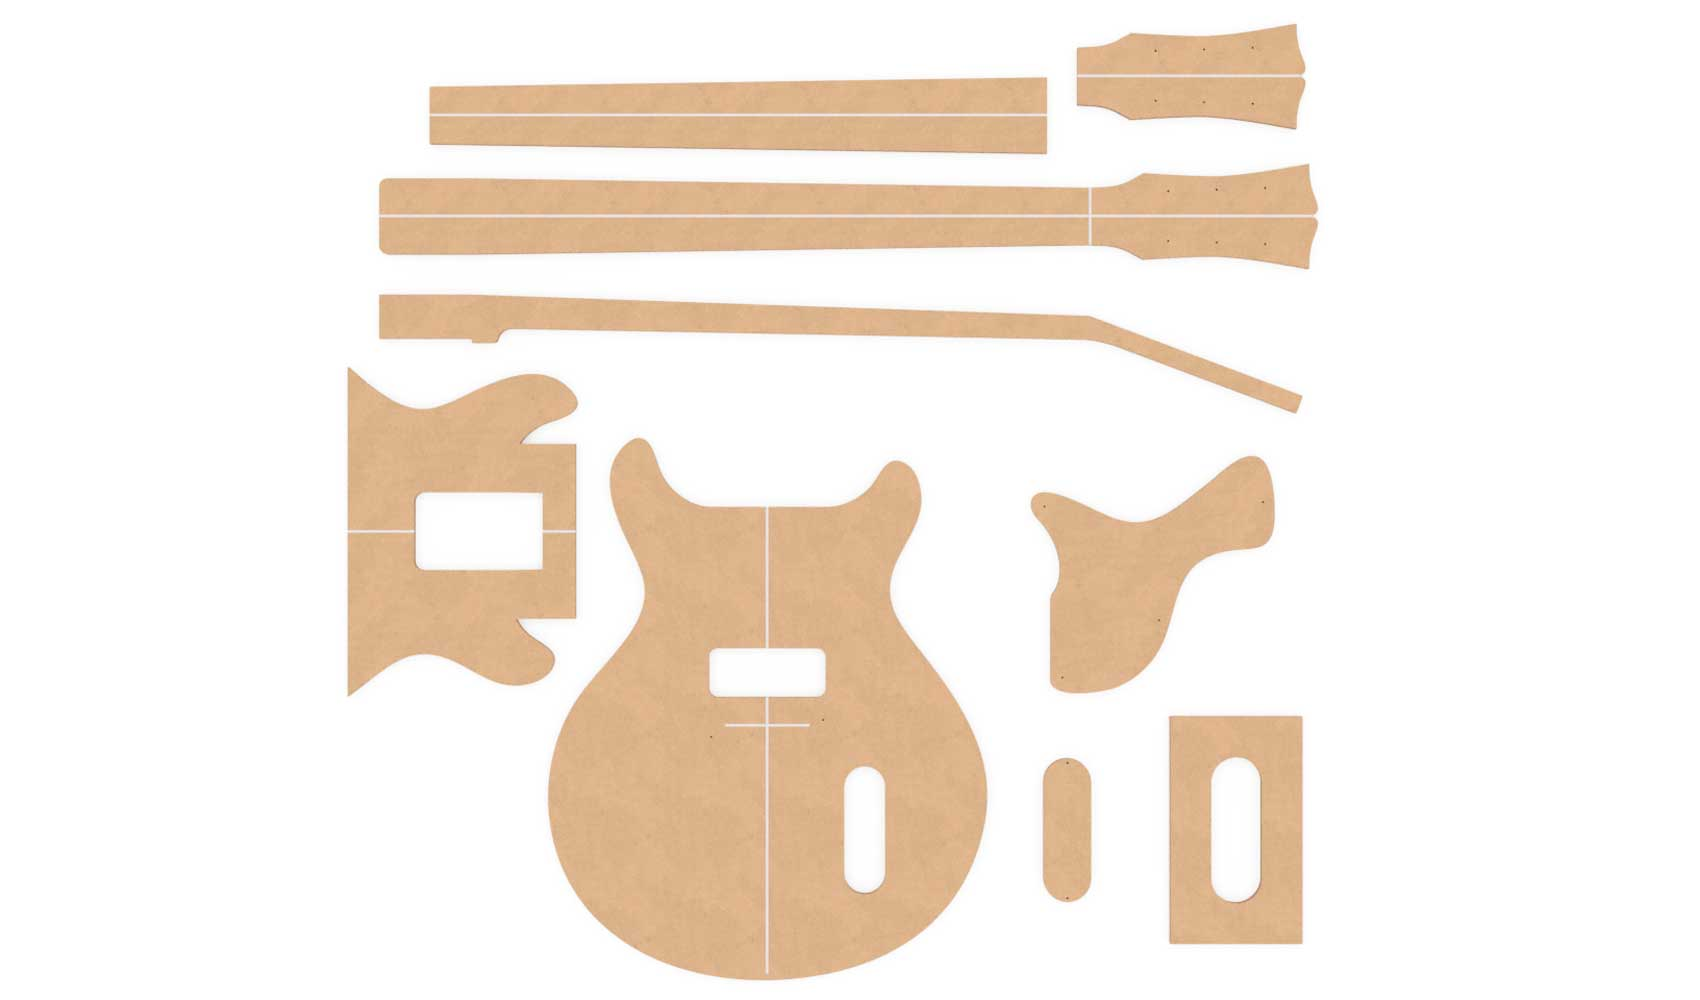 Les paul top carving template choice image template for Les paul top carving template